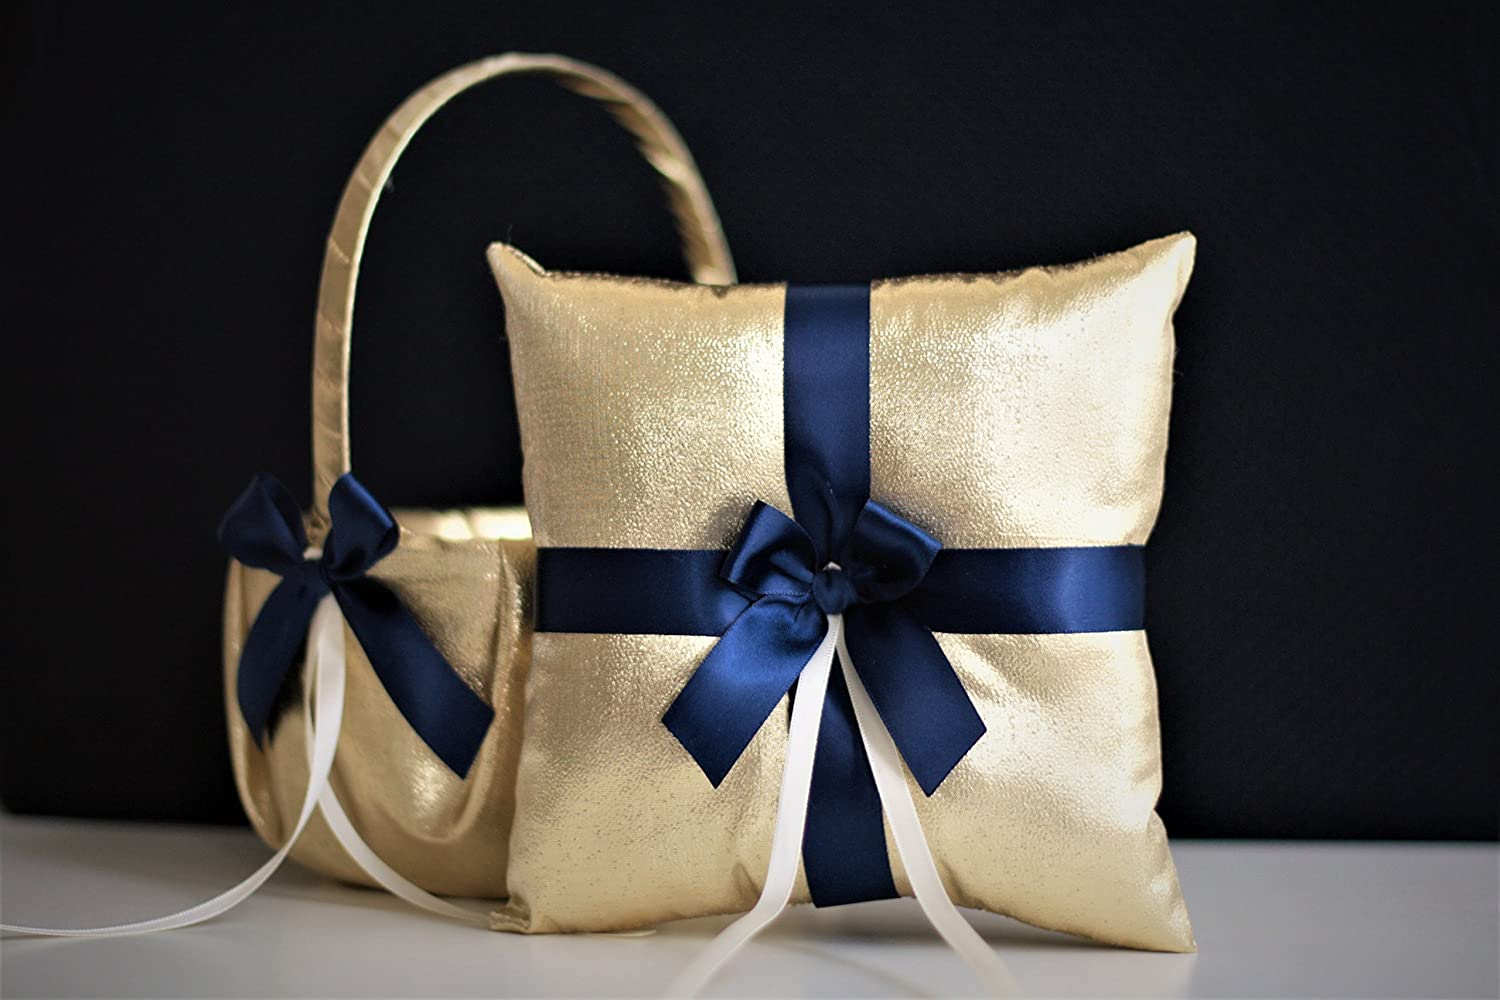 Gold Navy Wedding Flower Girl Basket & Ring Bearer Pillow Set \ Gold Wedding basket + Navy Ring Pillow \ Gold Navy Blue Basket Pillow Set